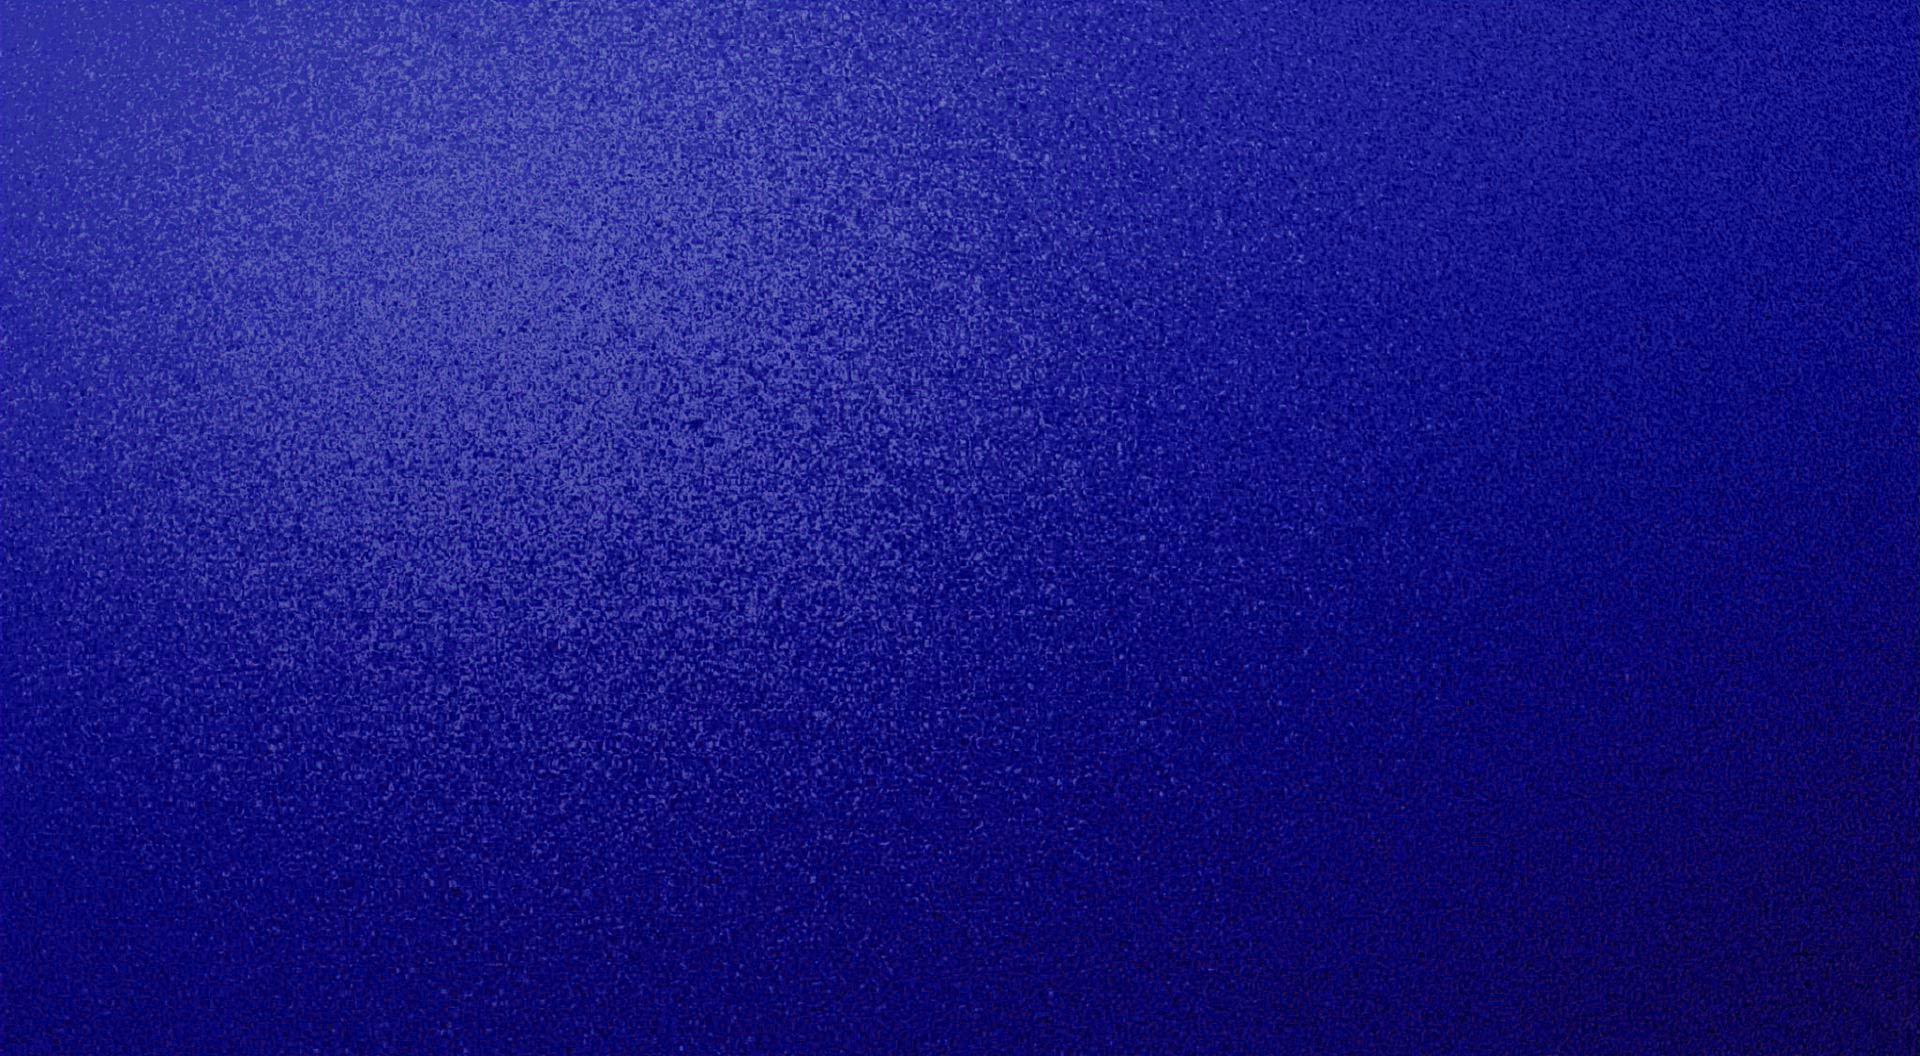 download navy blue wallpaper which is under the blue wallpapers 1920x1056